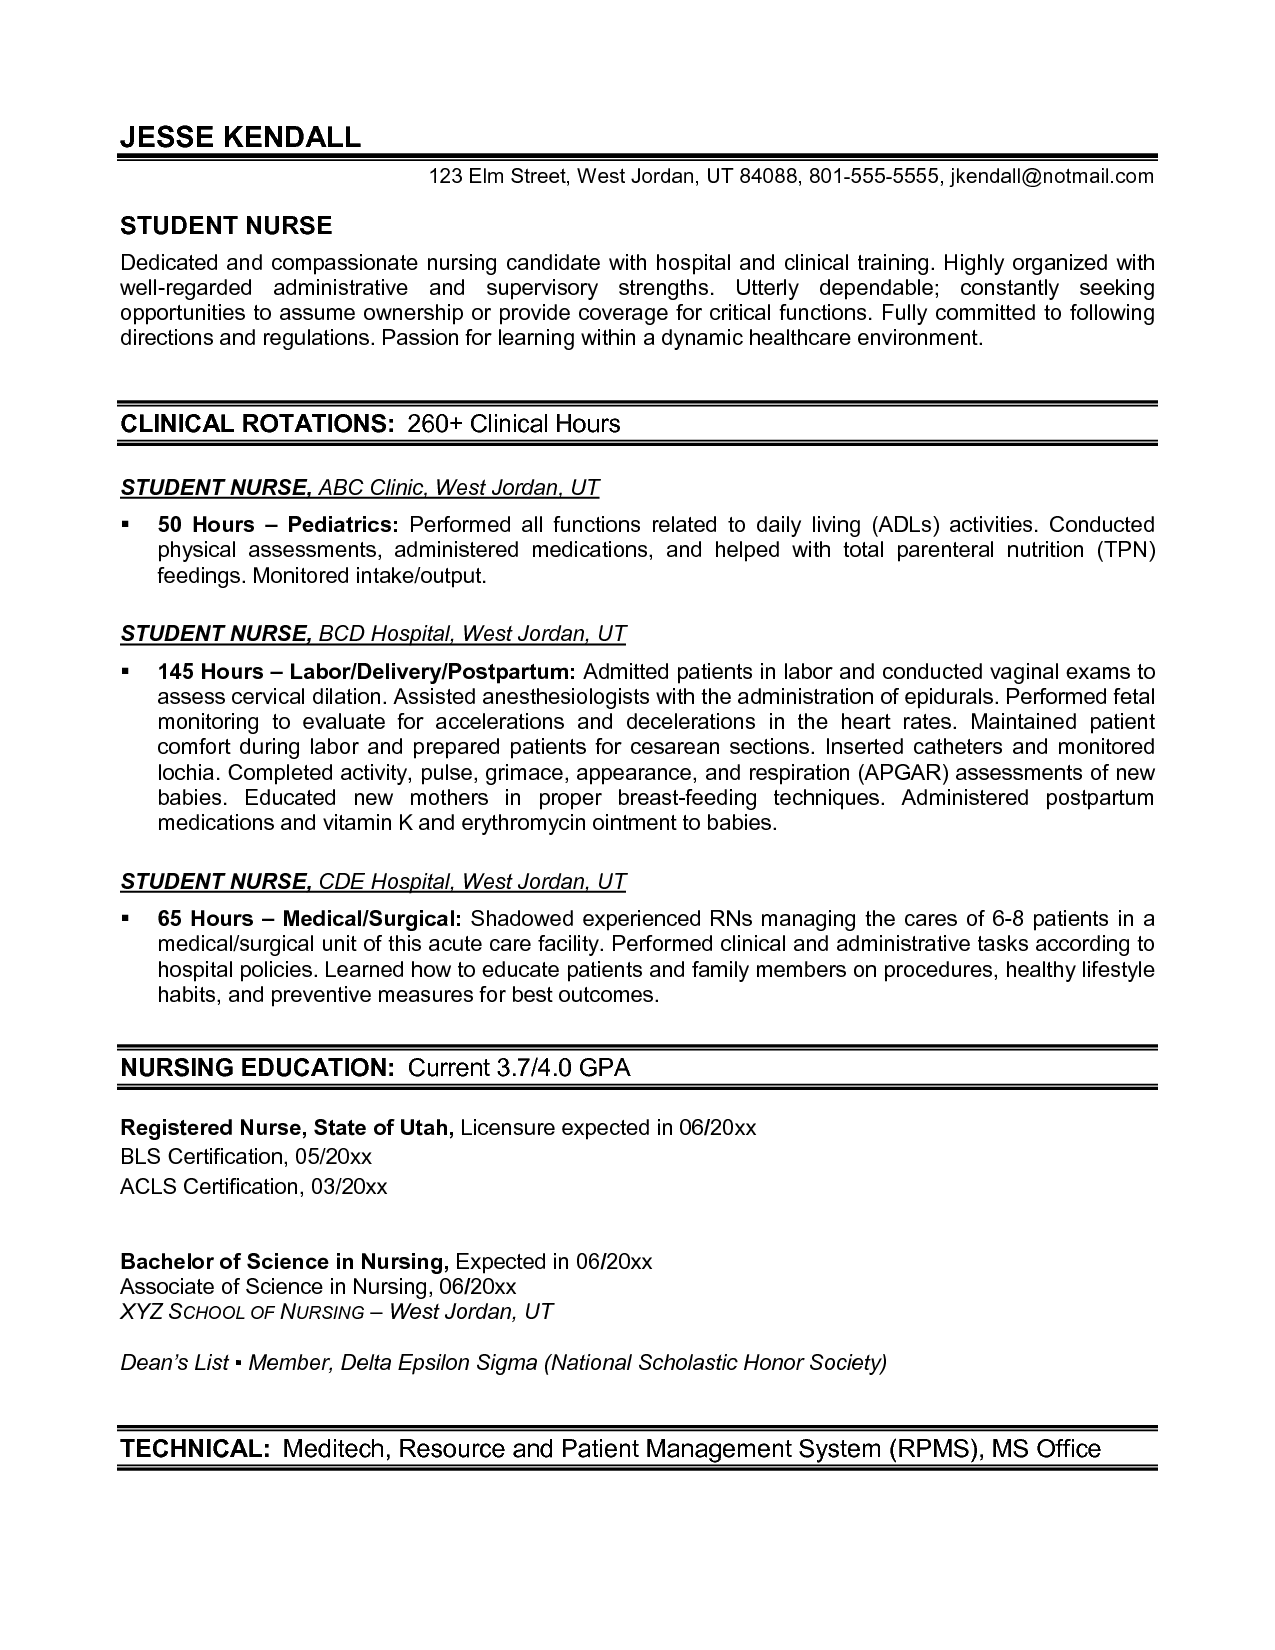 Captivating Nurse Educator Resume Resume Lpn Nursing Home Rn Resume Example Resume Cv  Cover Letter . Ideas Example Of Nursing Resume